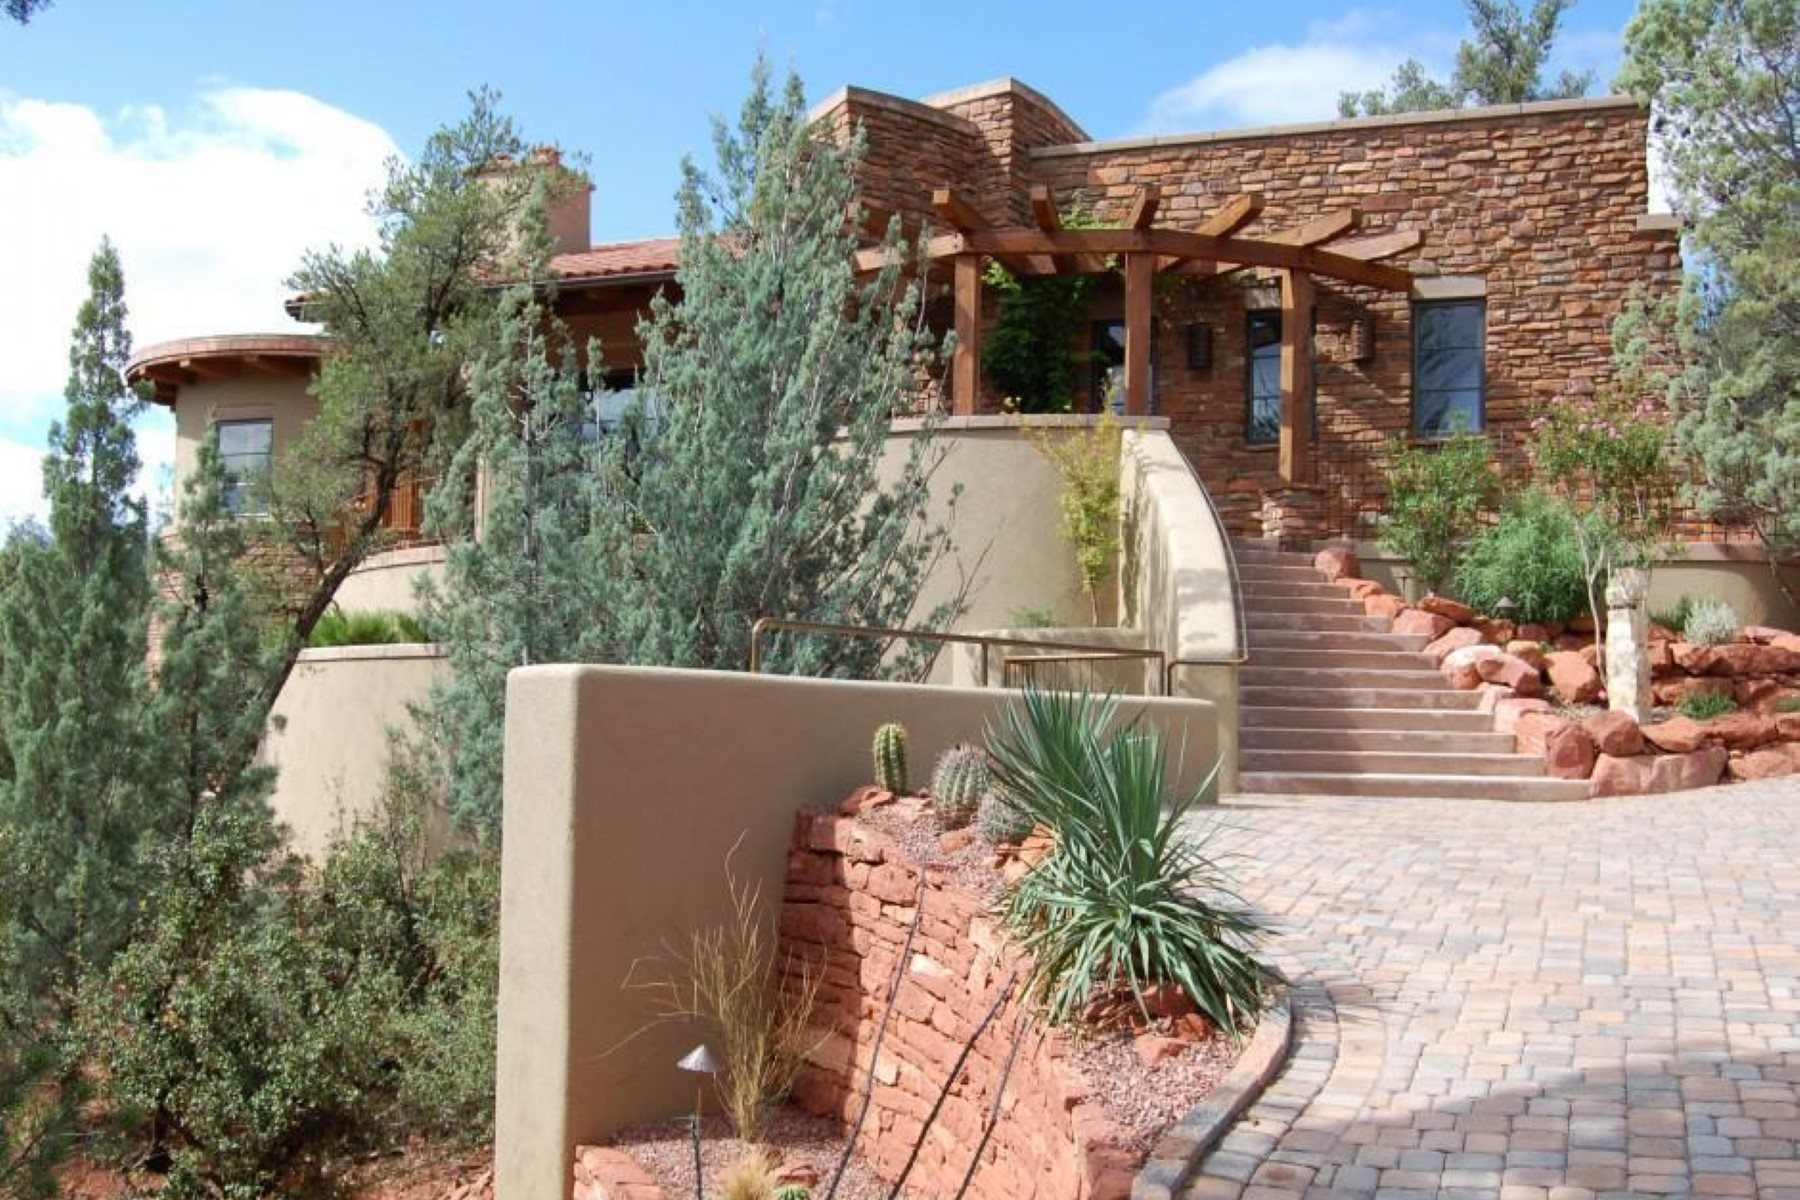 Maison unifamiliale pour l Vente à Custom Southwest Masterpiece 400 Little Scout Rd Sedona, Arizona, 86336 États-Unis